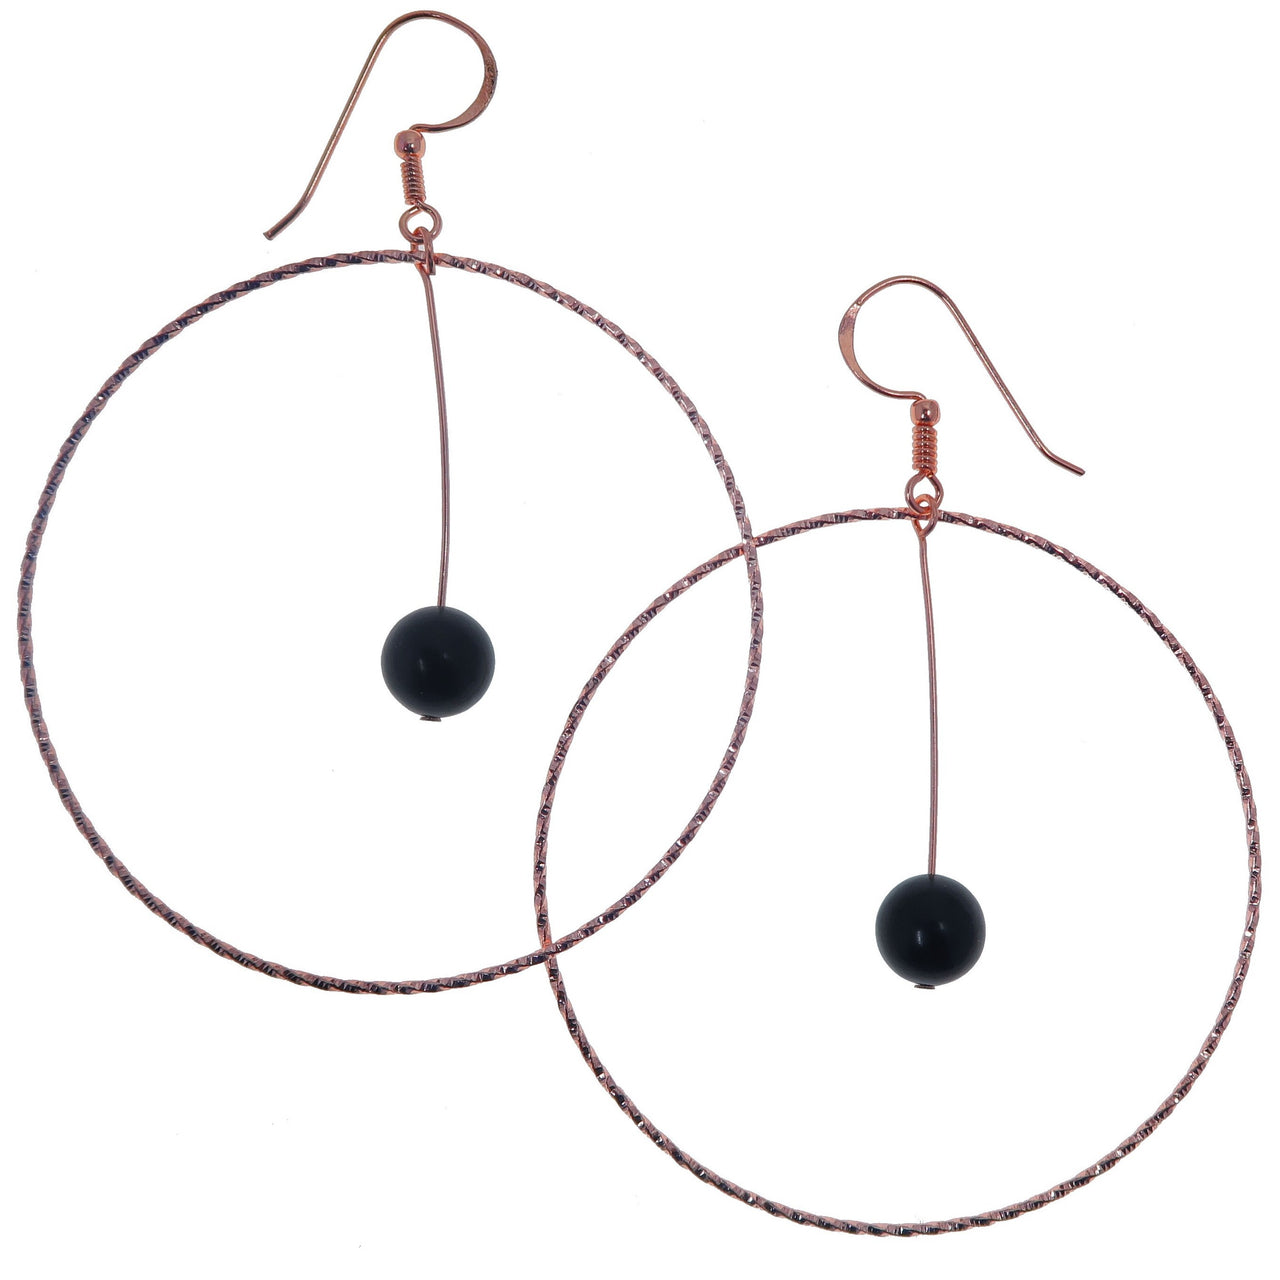 "Jet Earrings 3.5"" Big Copper Hoop Genuine Black Gemstone Crystal Healing Statement B02"